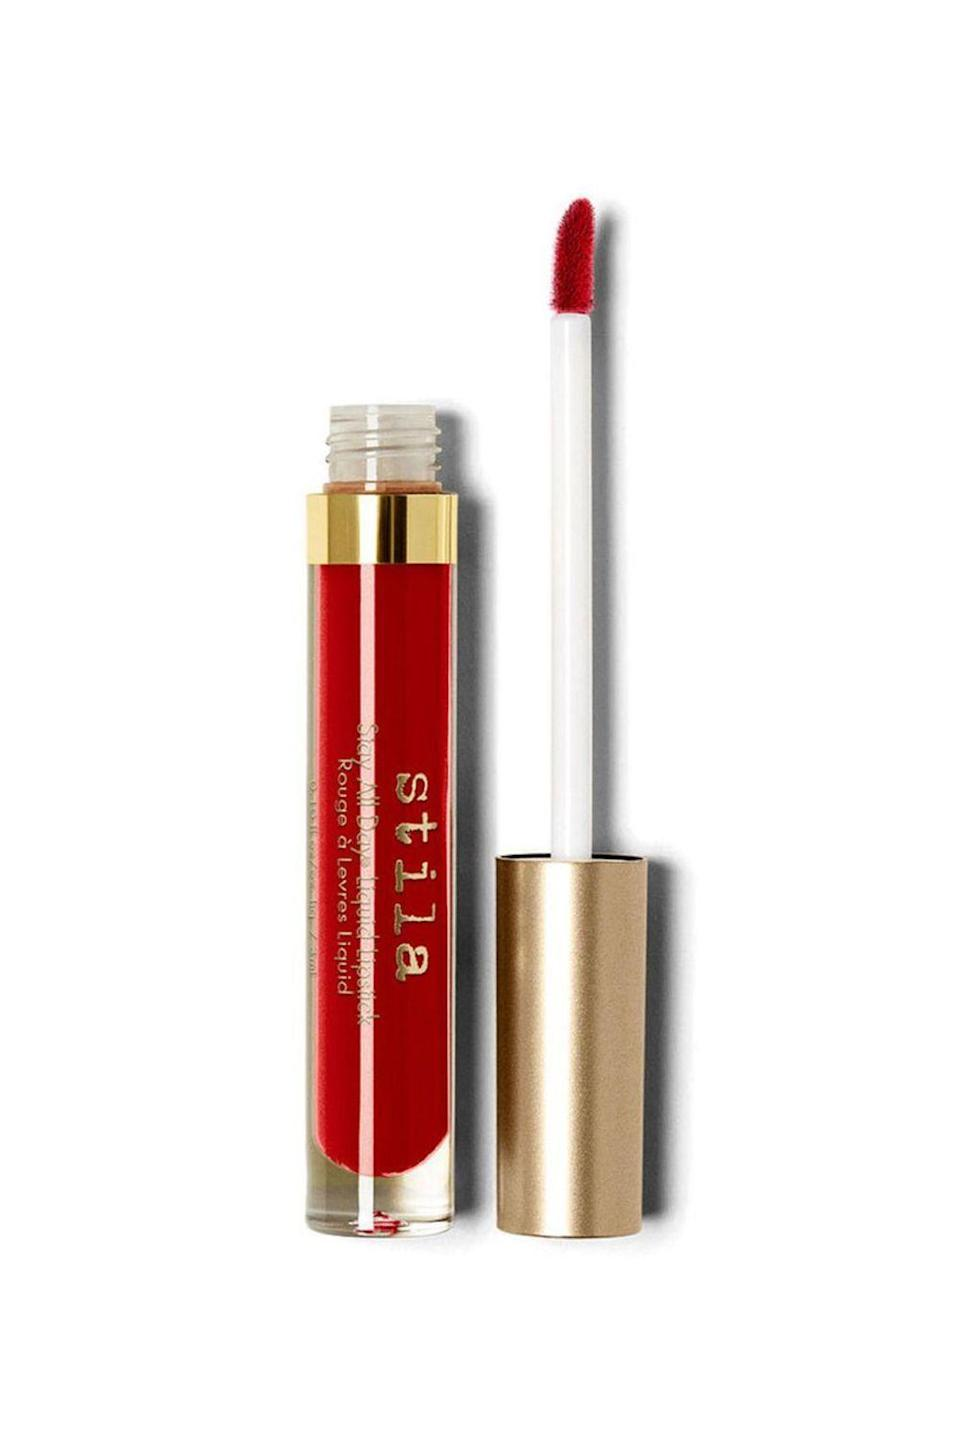 "<p><strong>Stila</strong></p><p>ulta.com</p><p><strong>$22.00</strong></p><p><a href=""https://go.redirectingat.com?id=74968X1596630&url=https%3A%2F%2Fwww.ulta.com%2Fstay-all-day-liquid-lipstick%3FproductId%3DxlsImpprod4930039&sref=https%3A%2F%2Fwww.oprahmag.com%2Fbeauty%2Fskin-makeup%2Fg34963135%2Fbest-red-lipsticks%2F"" rel=""nofollow noopener"" target=""_blank"" data-ylk=""slk:Shop Now"" class=""link rapid-noclick-resp"">Shop Now</a></p><p>Regardless of your politics, there is probably one thing we can all agree on: <a href=""https://www.oprahmag.com/entertainment/tv-movies/a33637079/who-is-alexandria-ocasio-cortez/"" rel=""nofollow noopener"" target=""_blank"" data-ylk=""slk:Rep. Alexandria Ocasio-Cortez"" class=""link rapid-noclick-resp"">Rep. Alexandria Ocasio-Cortez</a> (a.k.a. AOC) knows how to rock a bright, bold red lip. And this is the statement-making shade that gets her vote: ""One of the things that I love about a liquid lipstick like this is formulas that stay<em> all day</em>, because I really don't have time to be running in and out of the bathroom to be doing touch-ups,"" she told <em><a href=""https://www.youtube.com/watch?v=bXqZllqGWGQ"" rel=""nofollow noopener"" target=""_blank"" data-ylk=""slk:Vogue"" class=""link rapid-noclick-resp"">Vogue</a></em>. ""And I even I feel a little more oomph with a red on."" </p>"